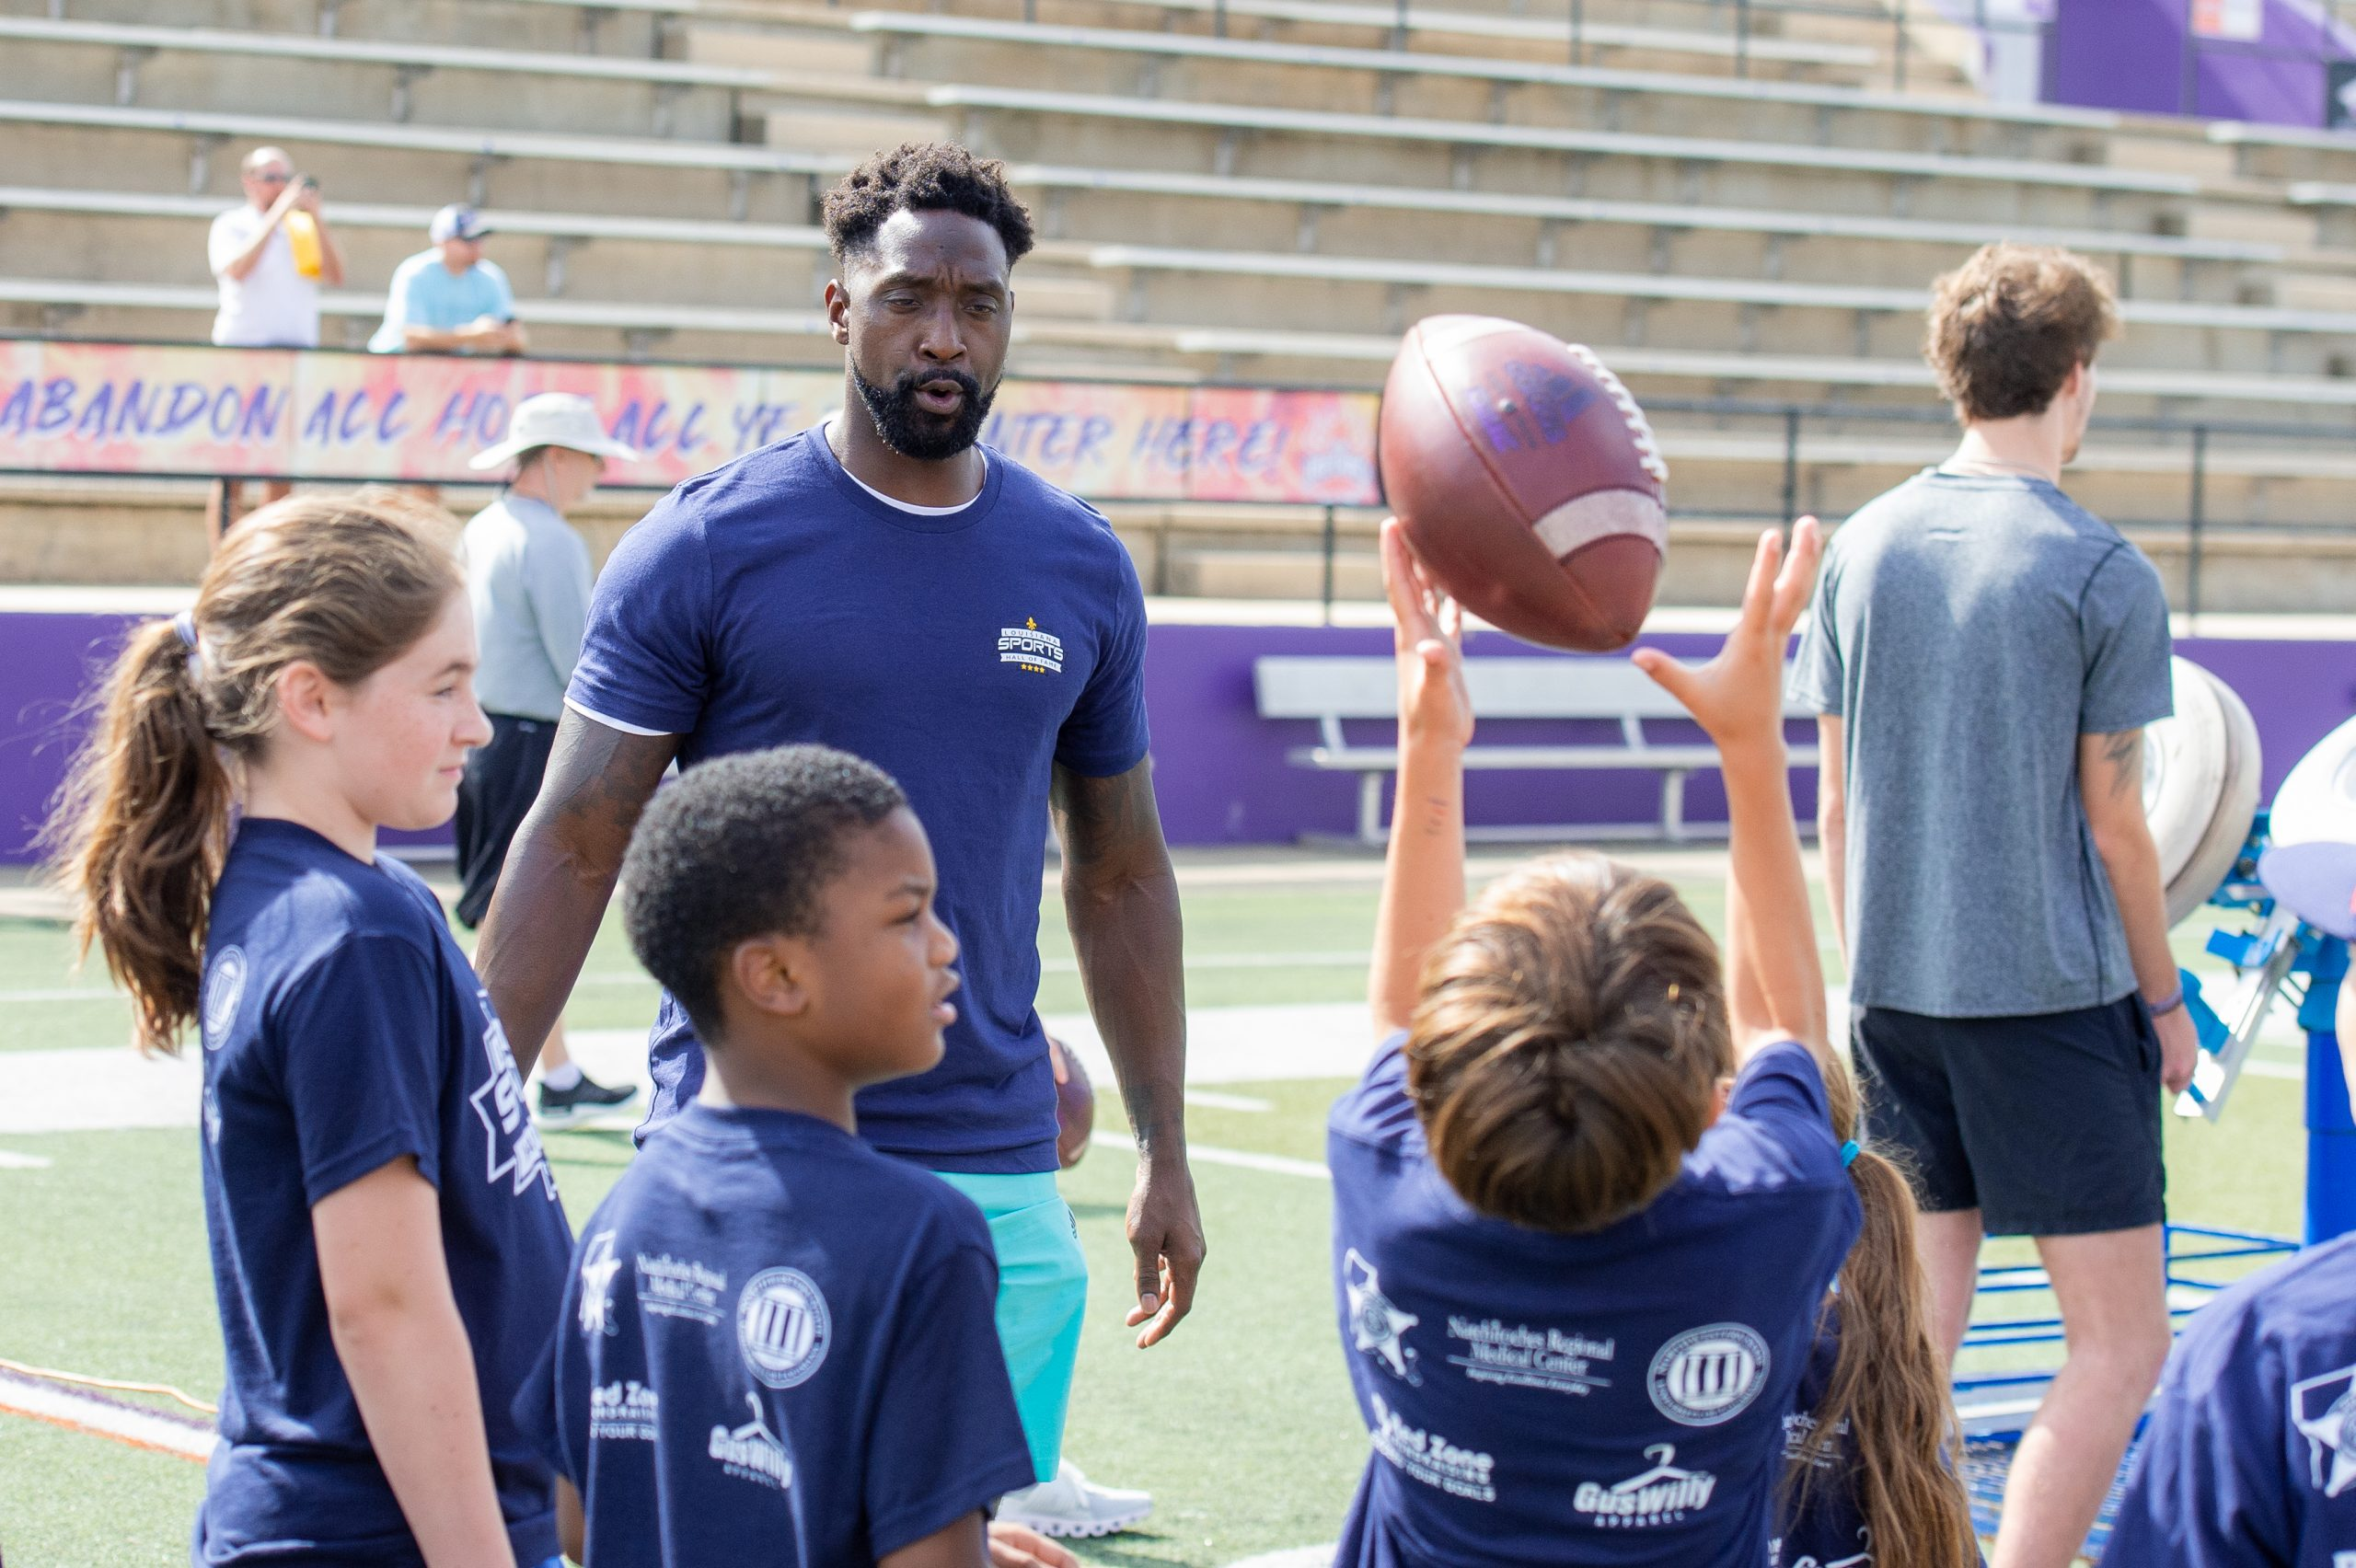 Video: 2020 Junior Training Camp presented by Natchitoches Regional Medical Center